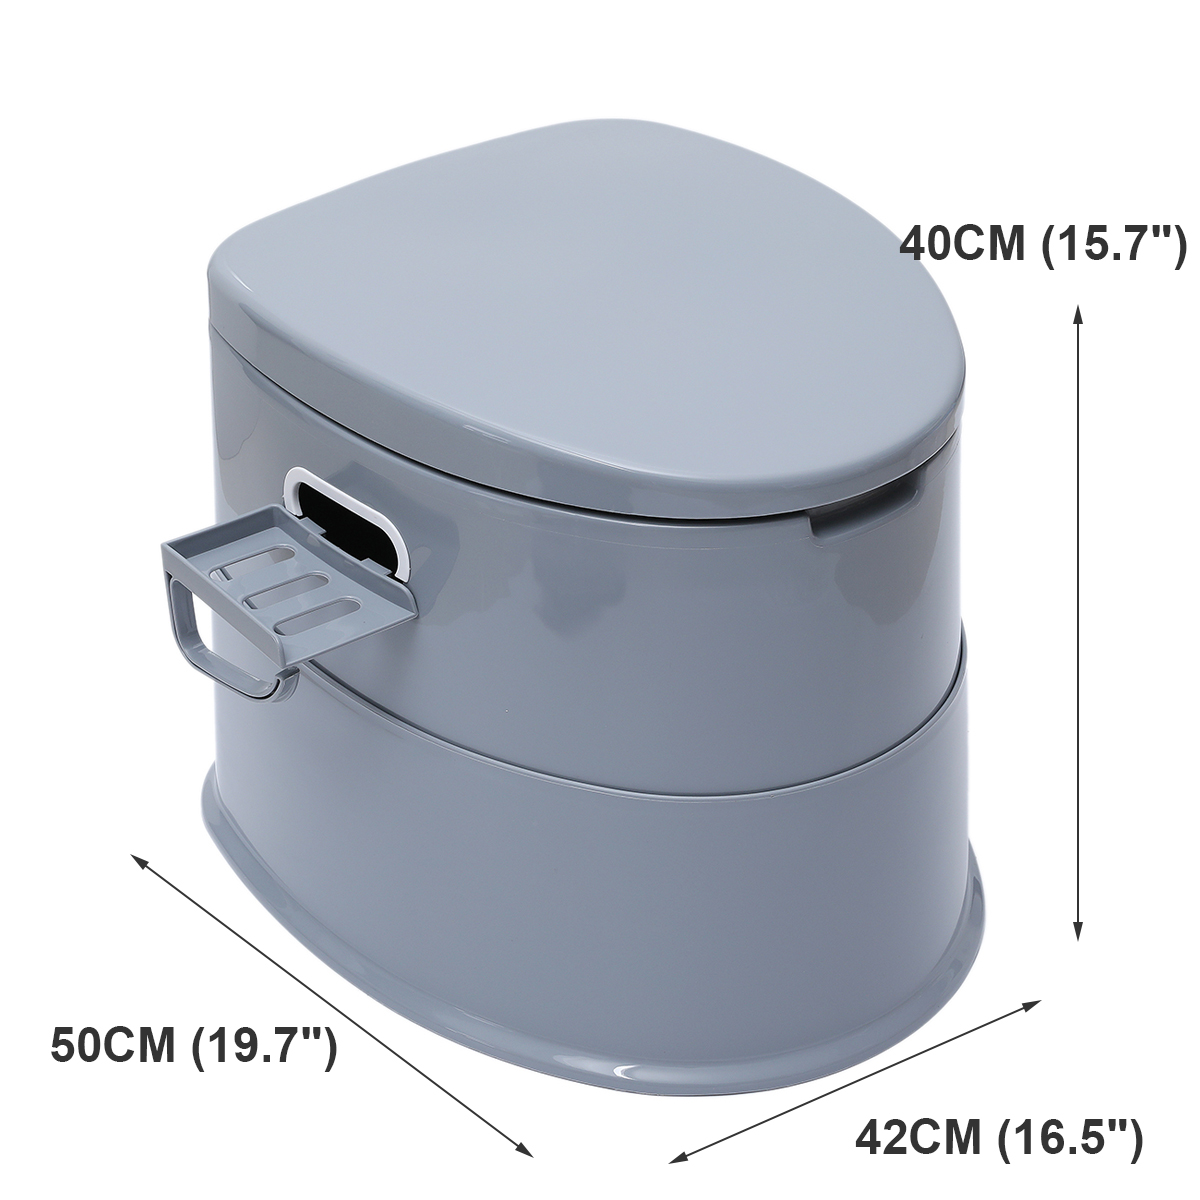 Portable Toilet Bowl Extra Strong Durable Support Adult Senior 7